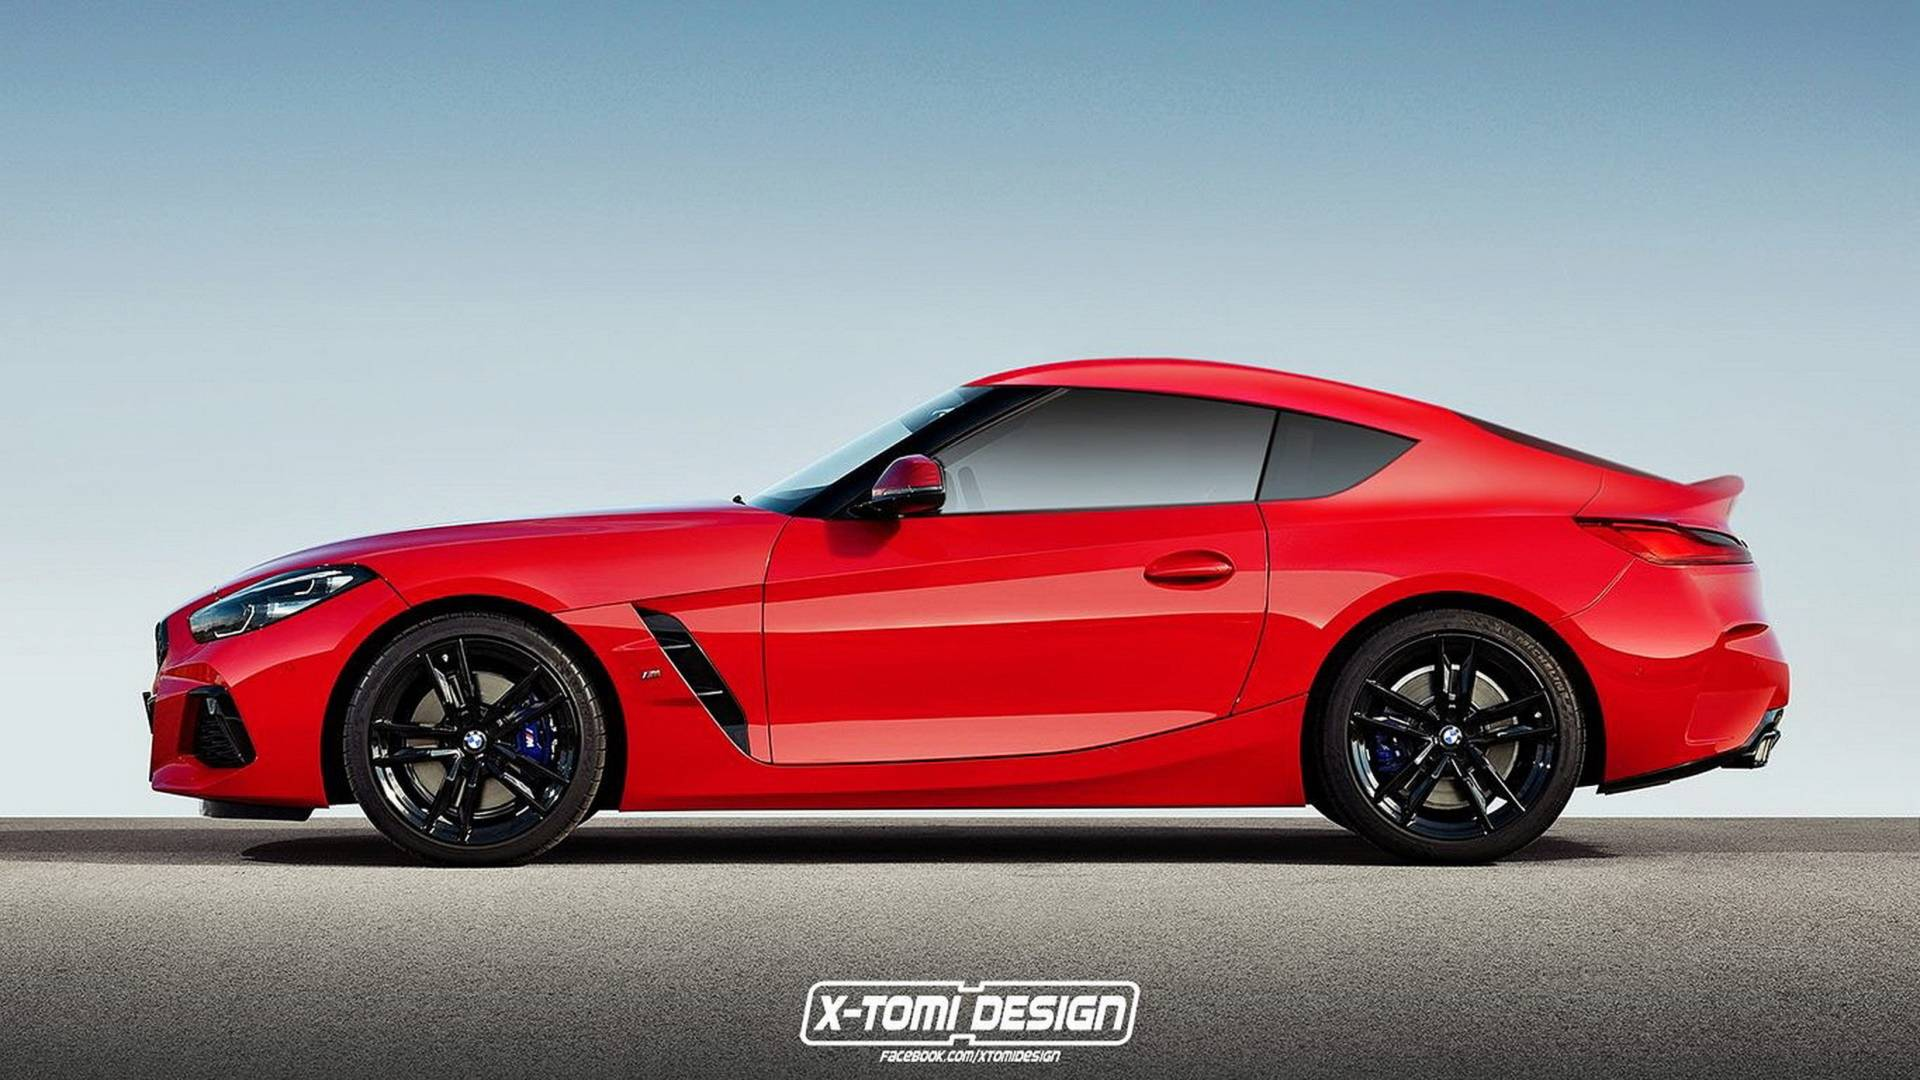 2019 Bmw Z4 M40i Coupe Render Makes Us Wish It Were Real